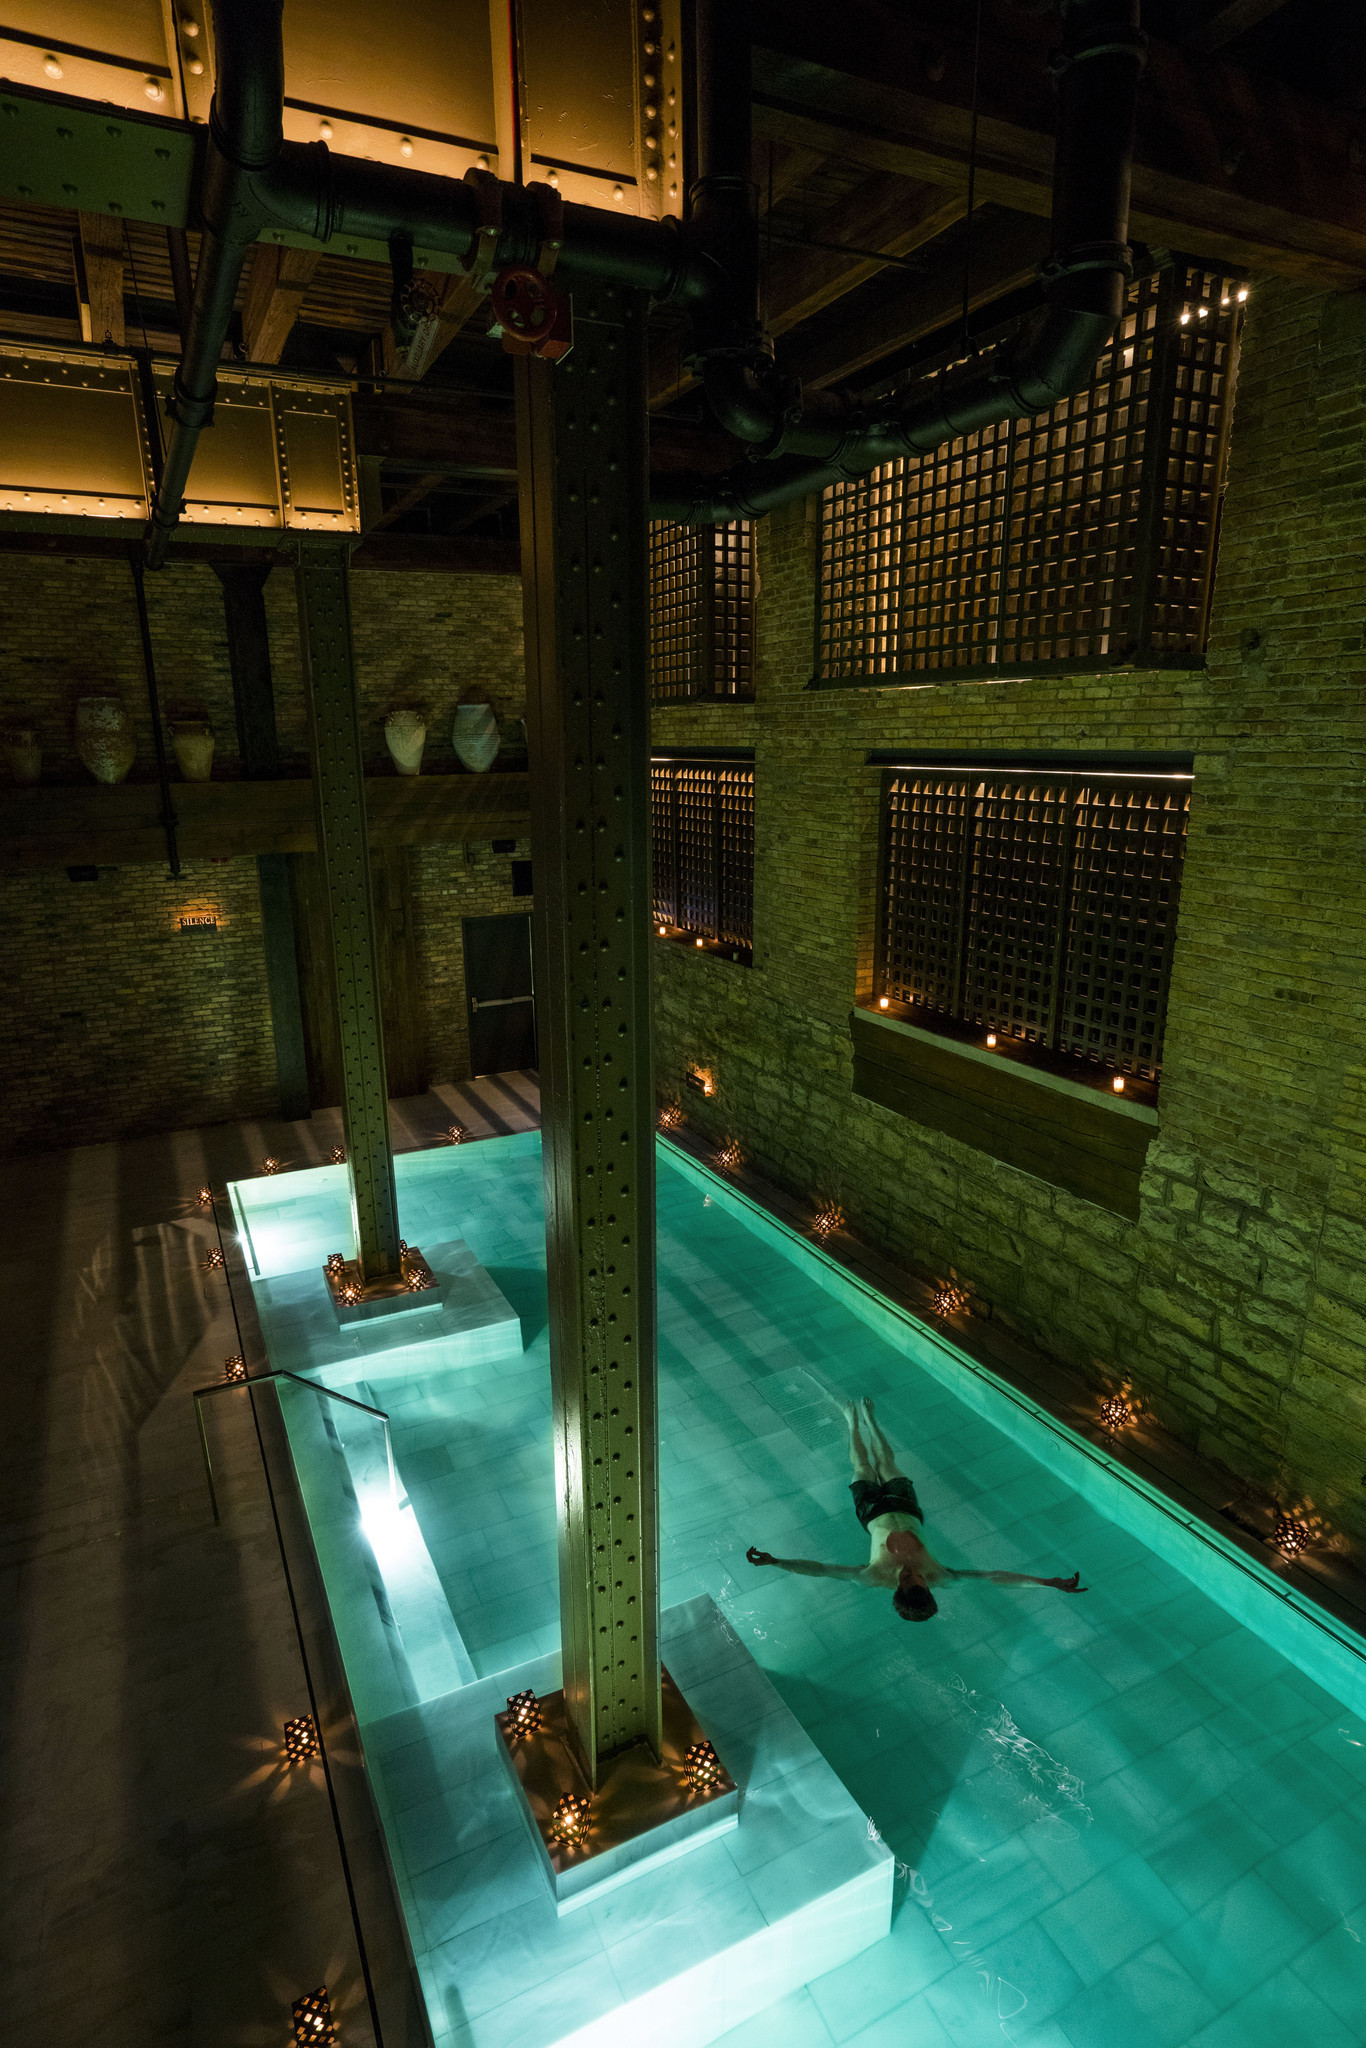 When in Rome, or Chicago: Thermal baths open in former River West ...